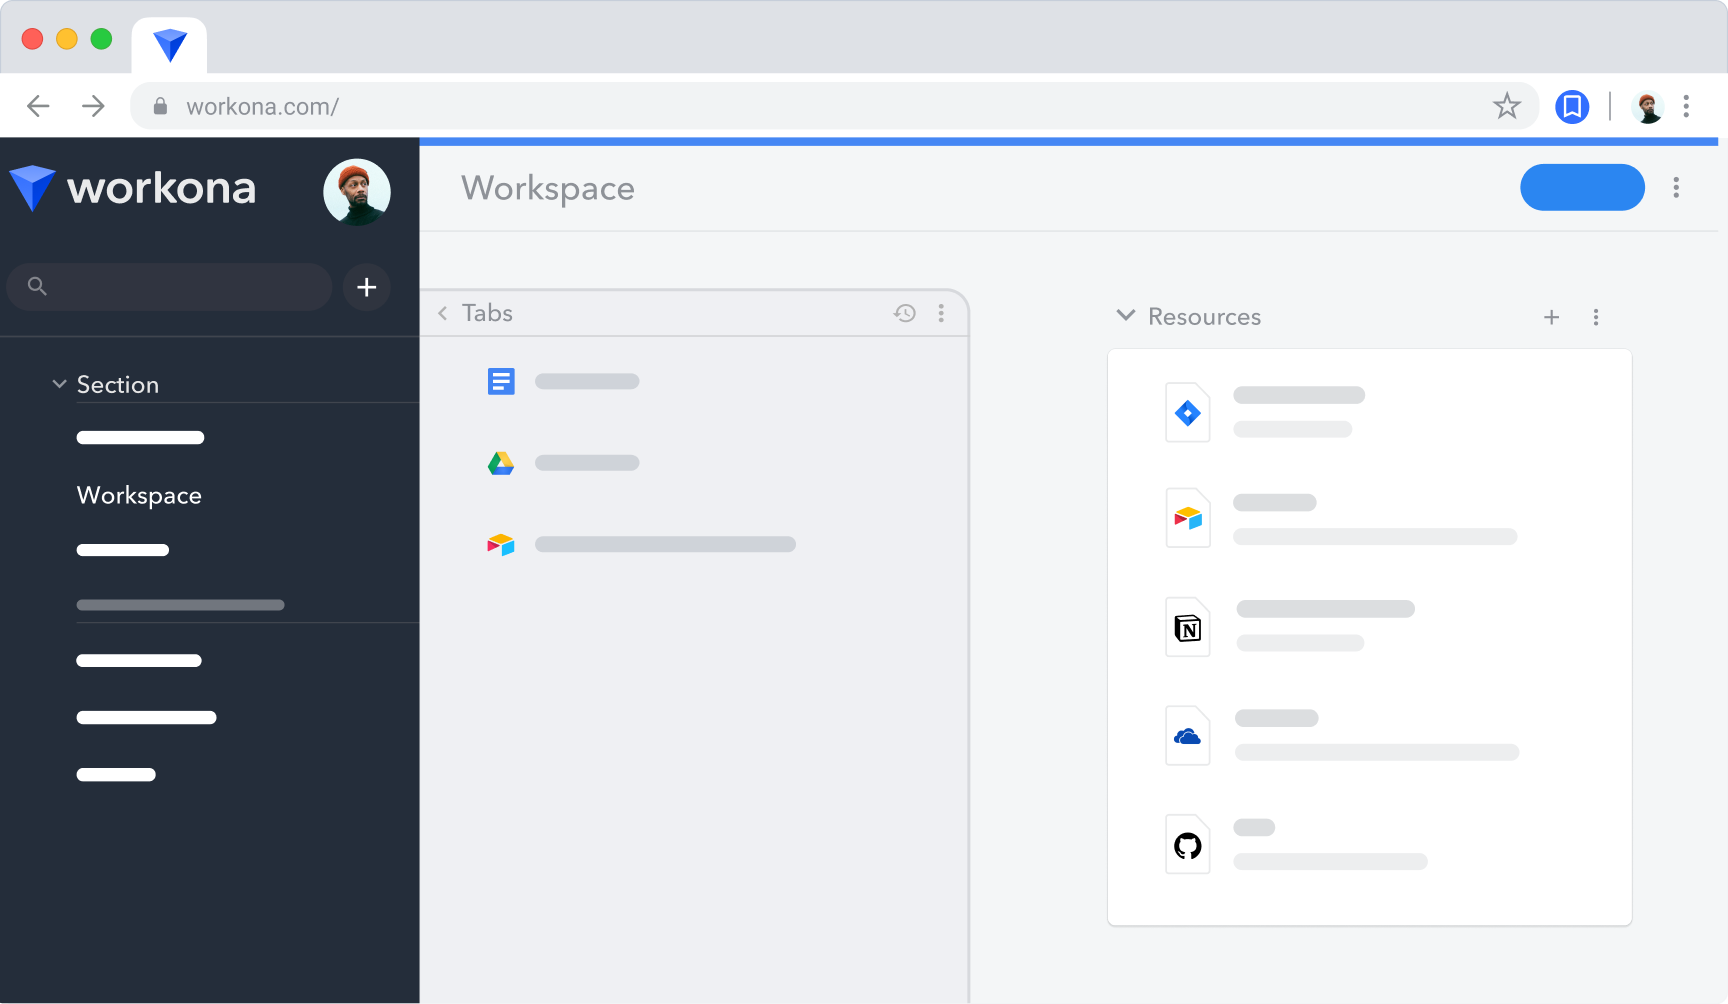 A simple rendering of the Workona interface, including workspaces, tabs, and resources